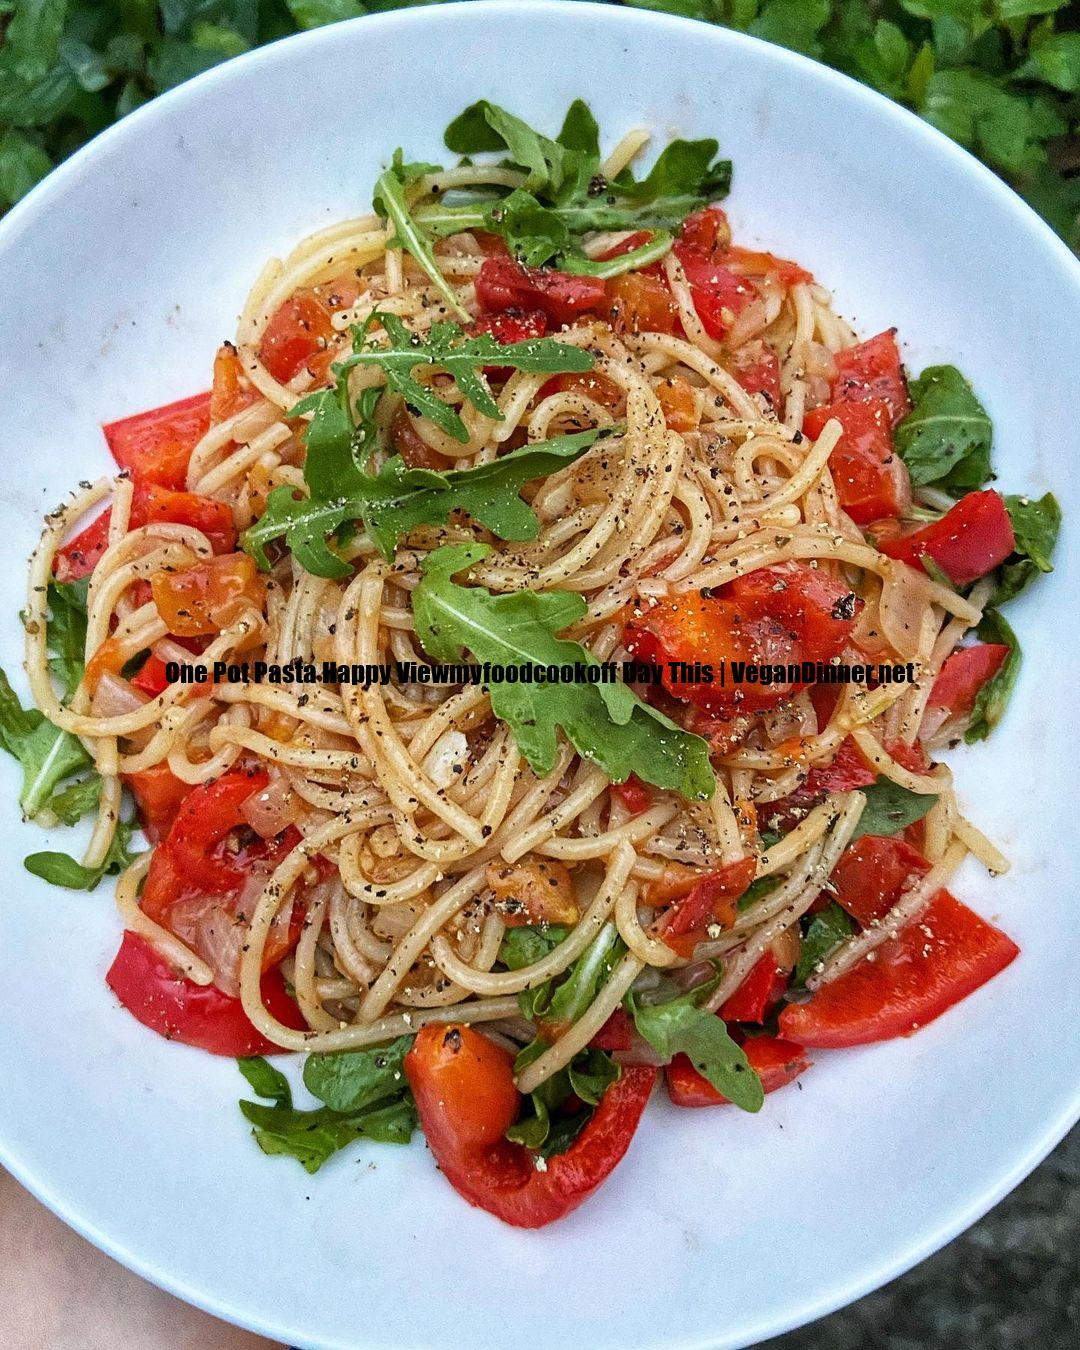 one pot pasta happy viewmyfoodcookoff day this display image eebcfa